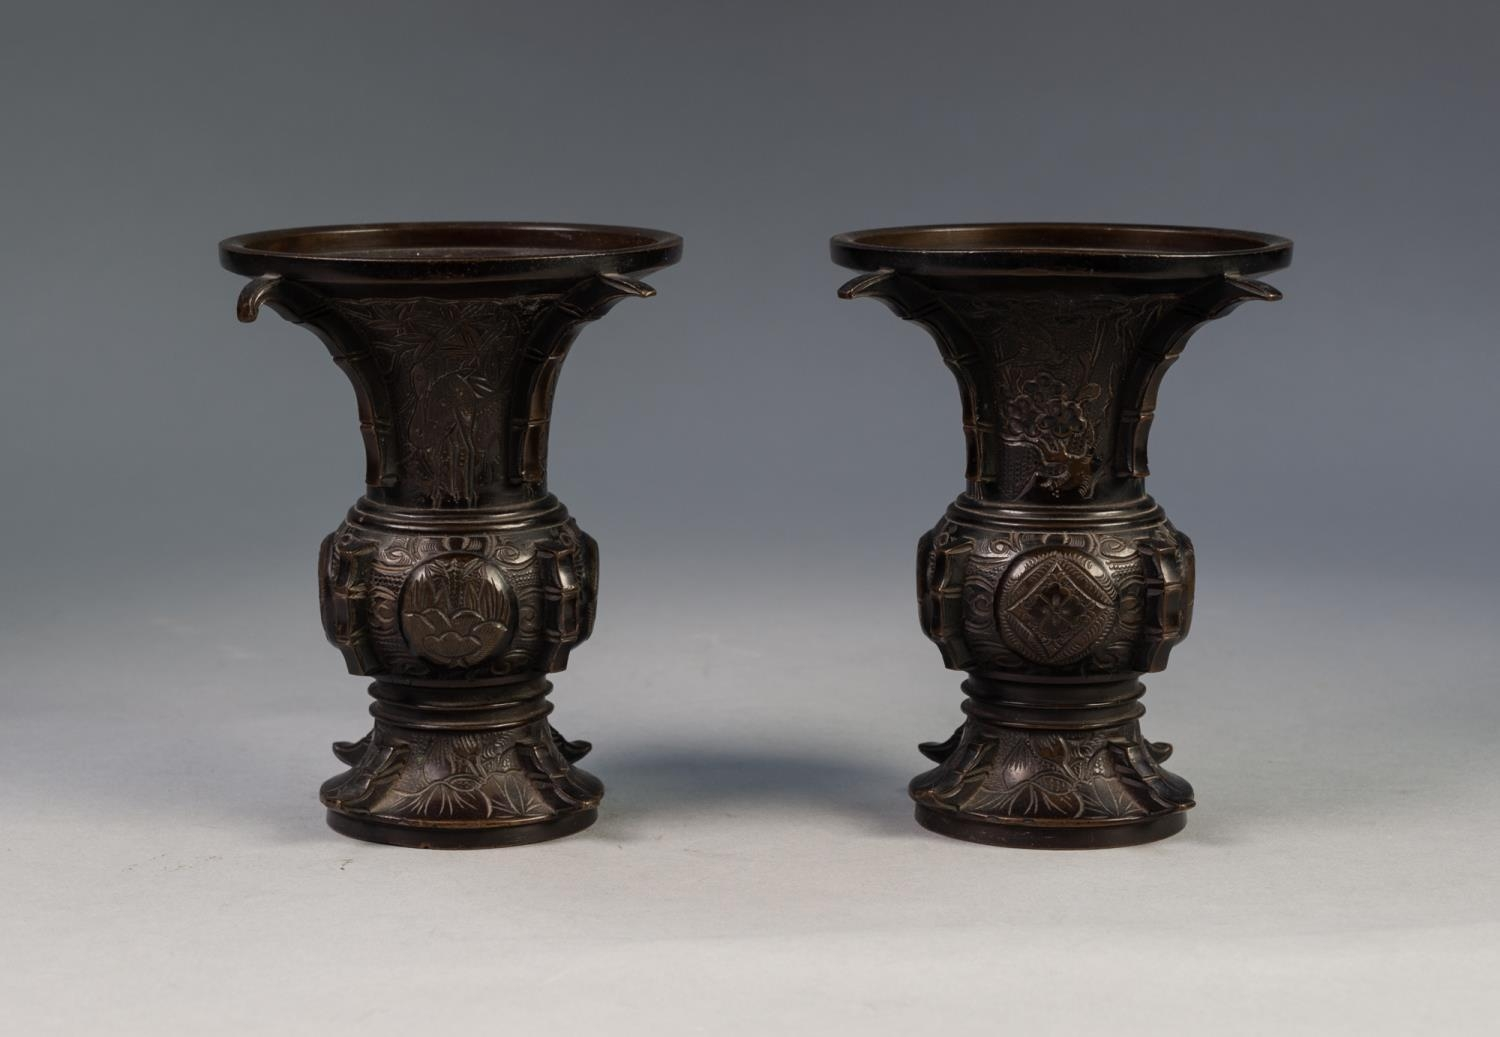 PAIR OF JAPANESE LATE MEIJI PERIOD BRONZE VASES, each of flared form, engraved with panels